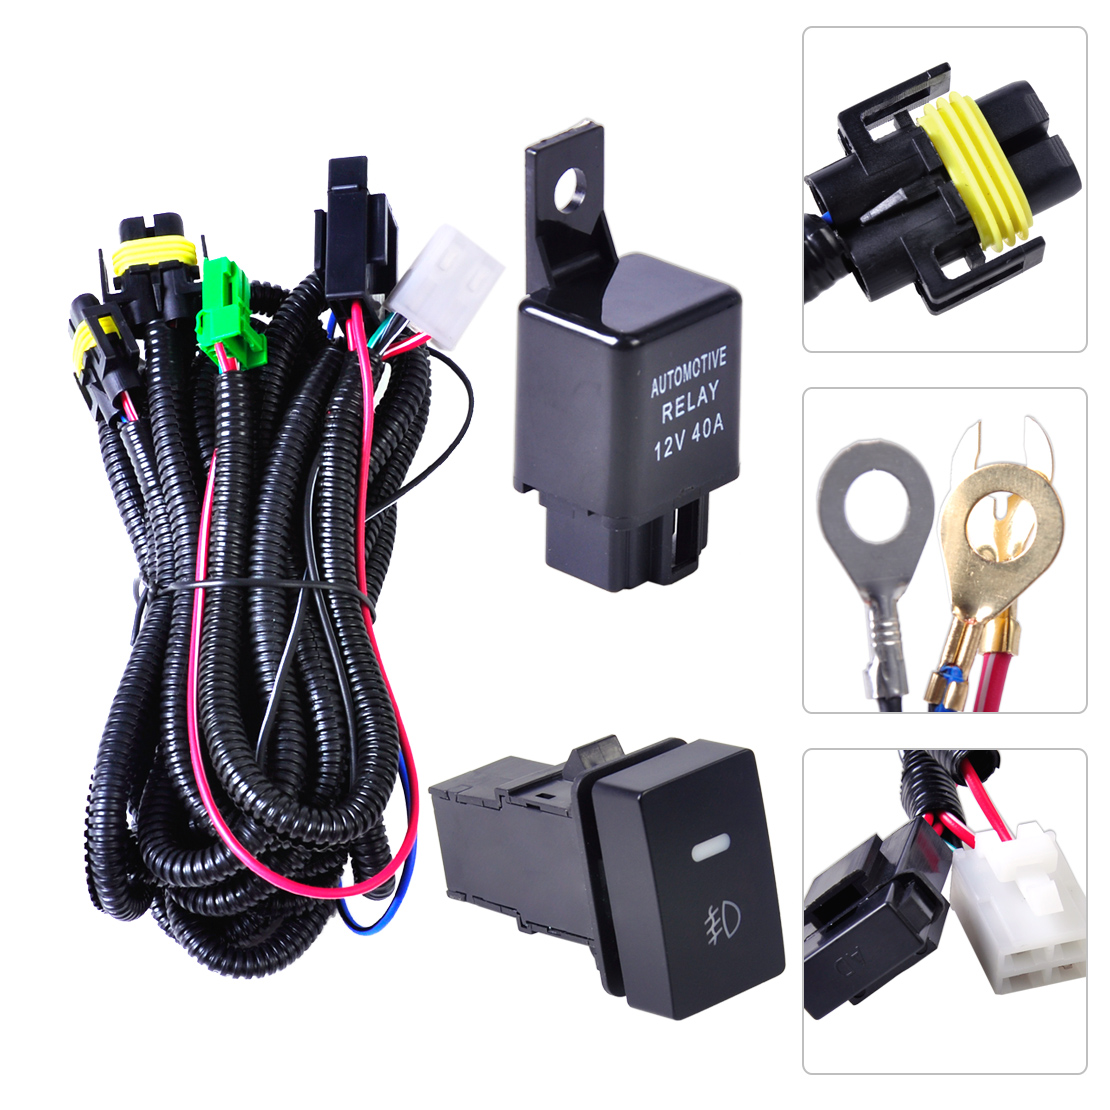 DWCX Wiring Harness Sockets Wire + Switch for H11 Fog Light Lamp for Ford Focus Acura Nissan Suzuki Subaru Lincoln Honda CR-V for infiniti fx35 37 45 50 ex35 37 h11 wiring harness sockets wire connector switch 2 fog lights drl front bumper led lamp